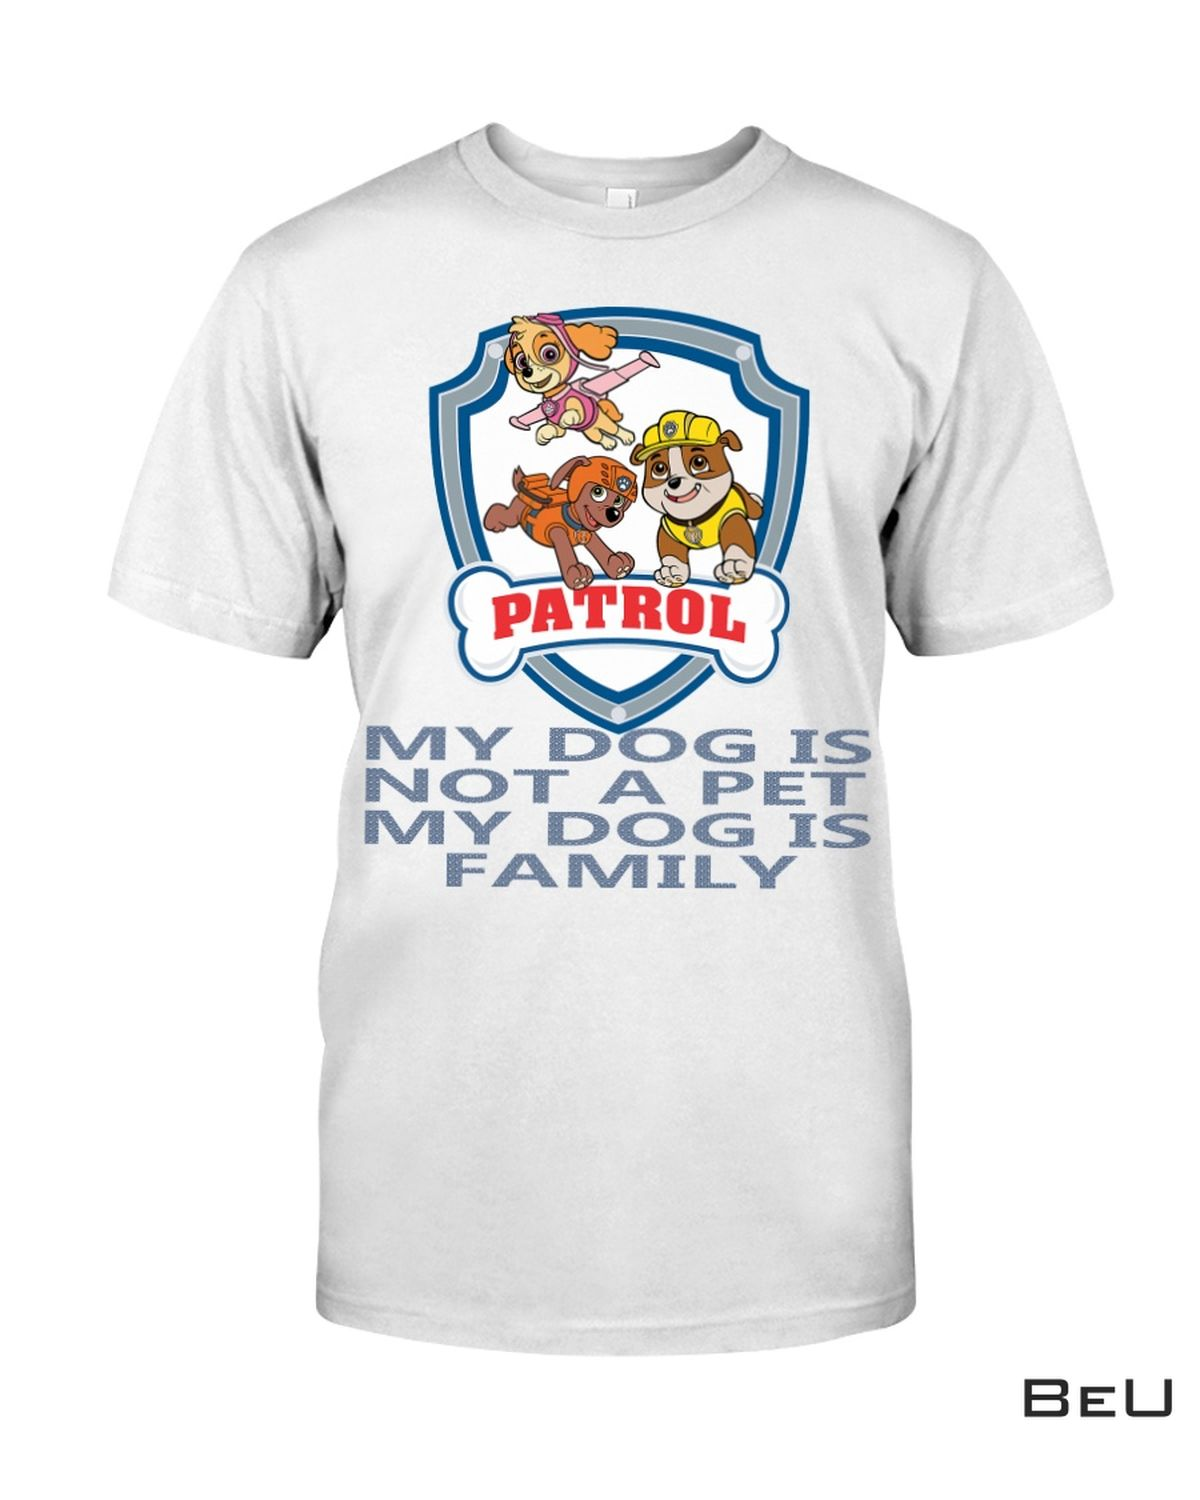 Patrol My Dog Is Not A Pet My Dog Is Family Shirt, hoodie, tank top